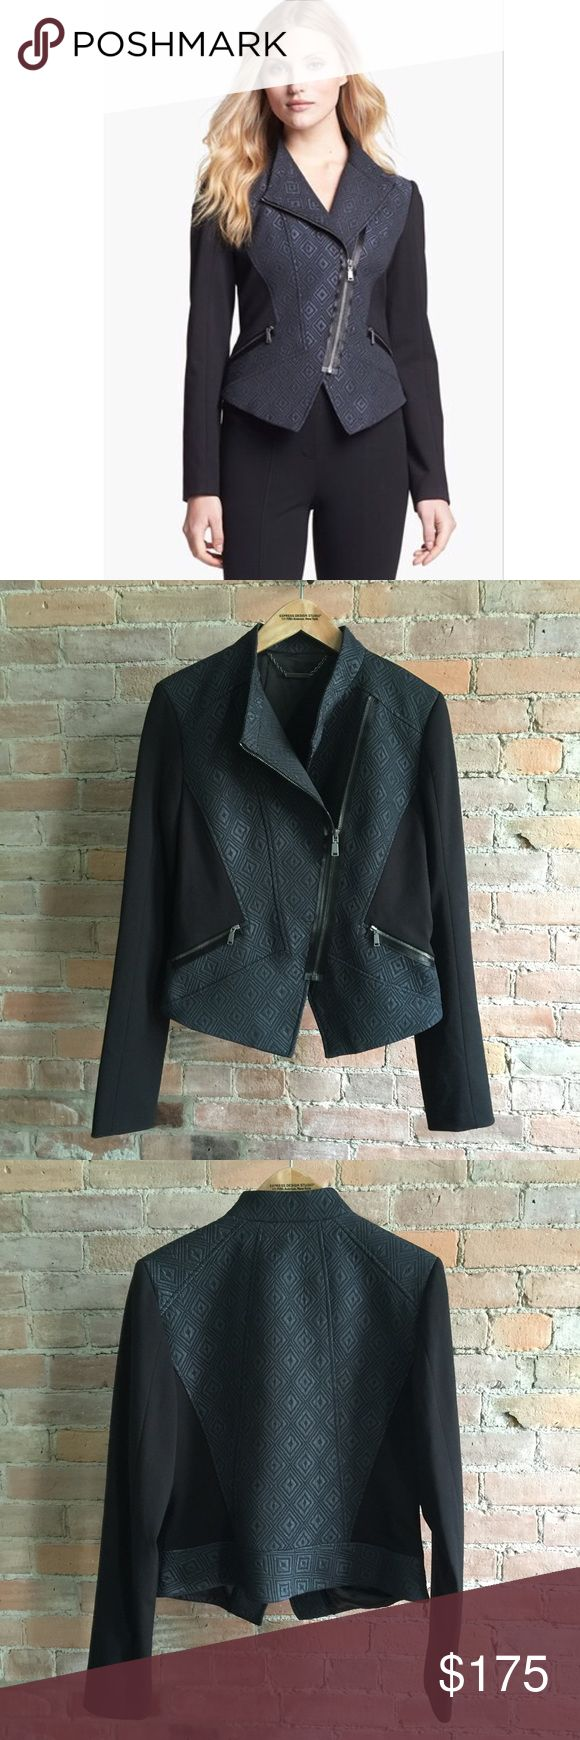 NWOT Elie Tahari Viola Midnight moto jacket Stunning brand new diamond jacquard Viola moto jacket from Elie Tahari. Like new. Has slate blue body and contrast sleeves. Asymmetric hem and zip. Super fitted and flattering to your waist. Looks couture, must have for fall. Size 10. Fits small L or larger M. Elie Tahari Jackets & Coats